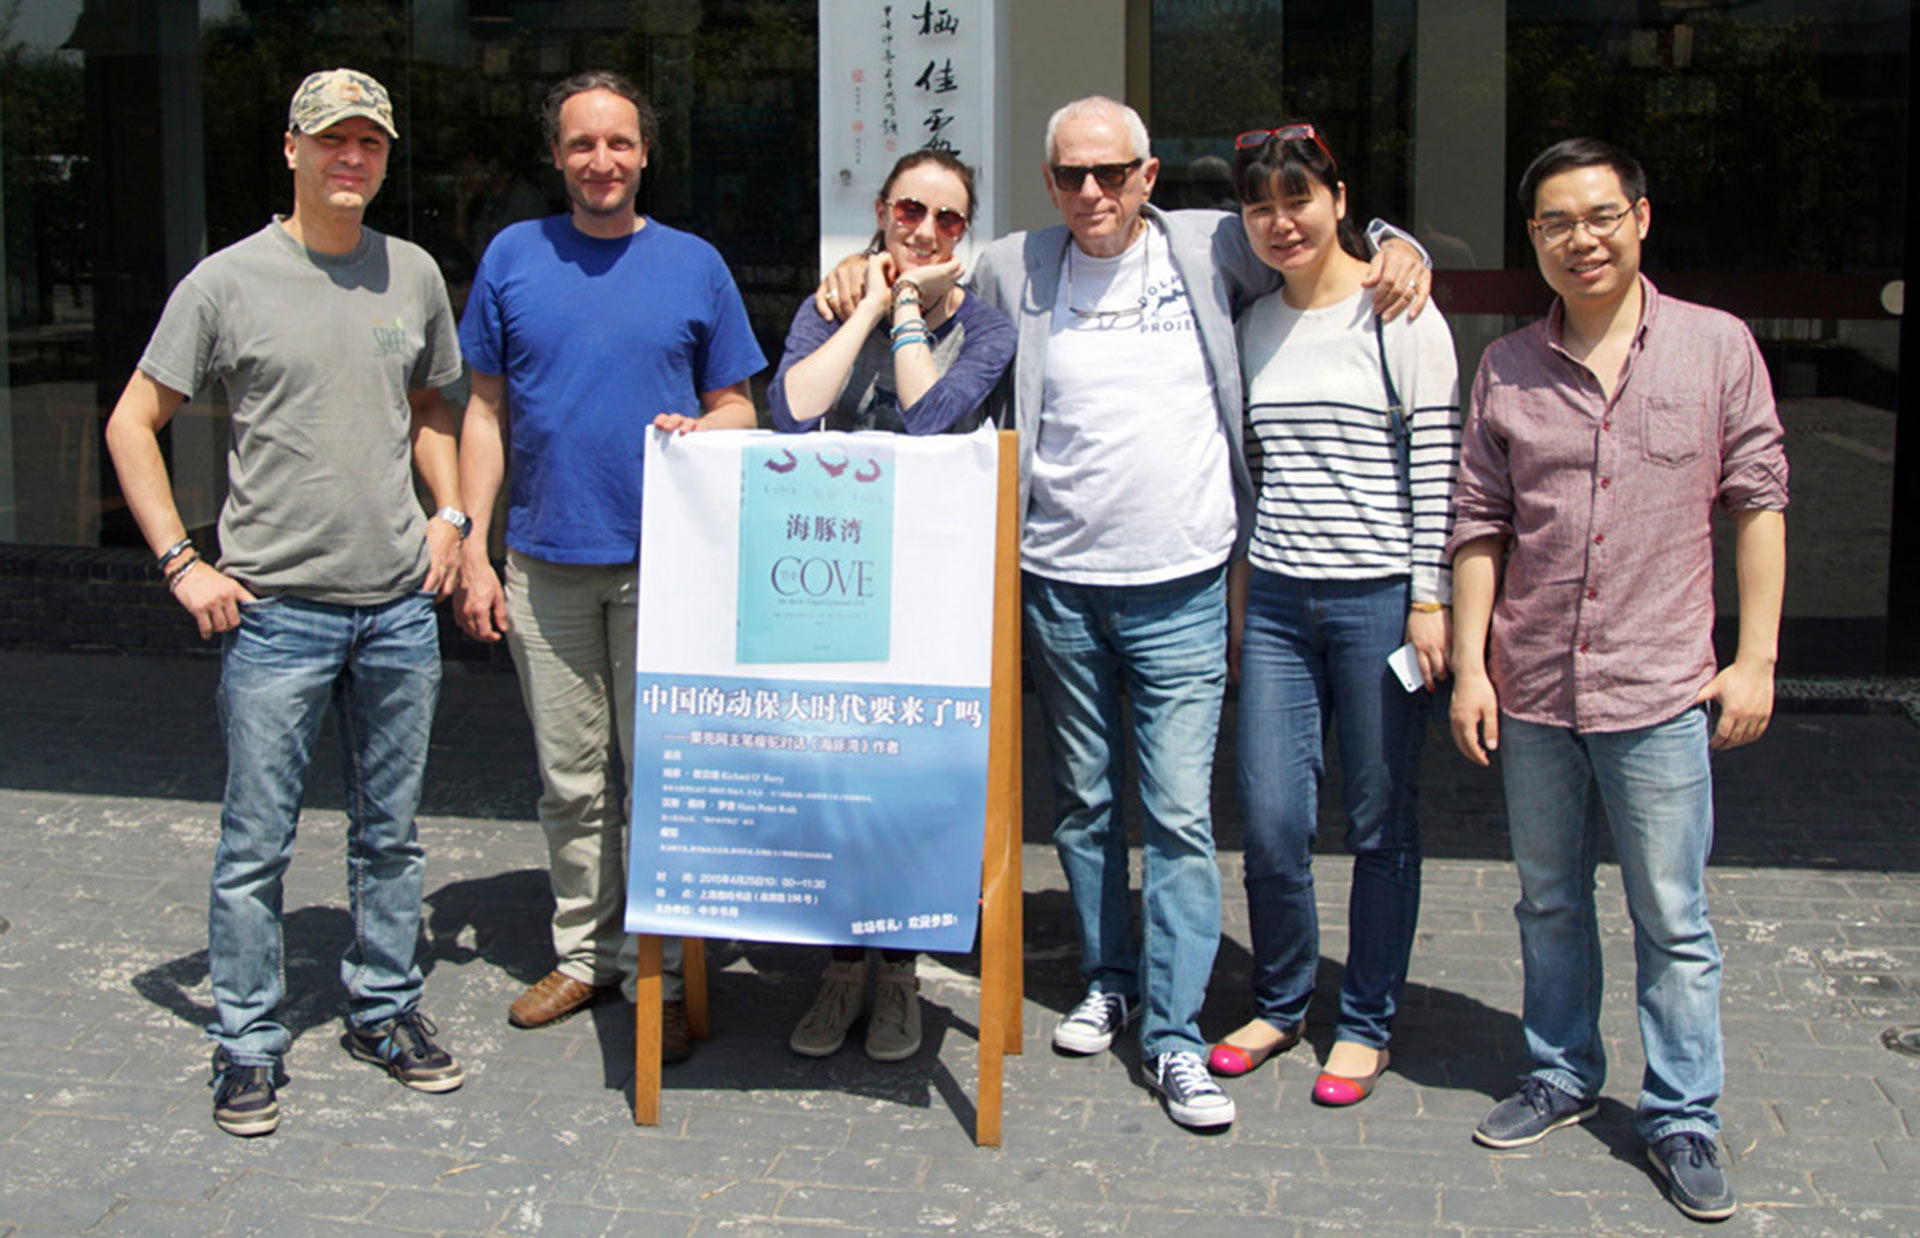 Before an informal public talk at Luming Book store in Shanghai. From L-R: Sasha Abdolmajid, Hans Peter Roth, Maria Nangle, Ric O'Barry, Pearl Han, He Long